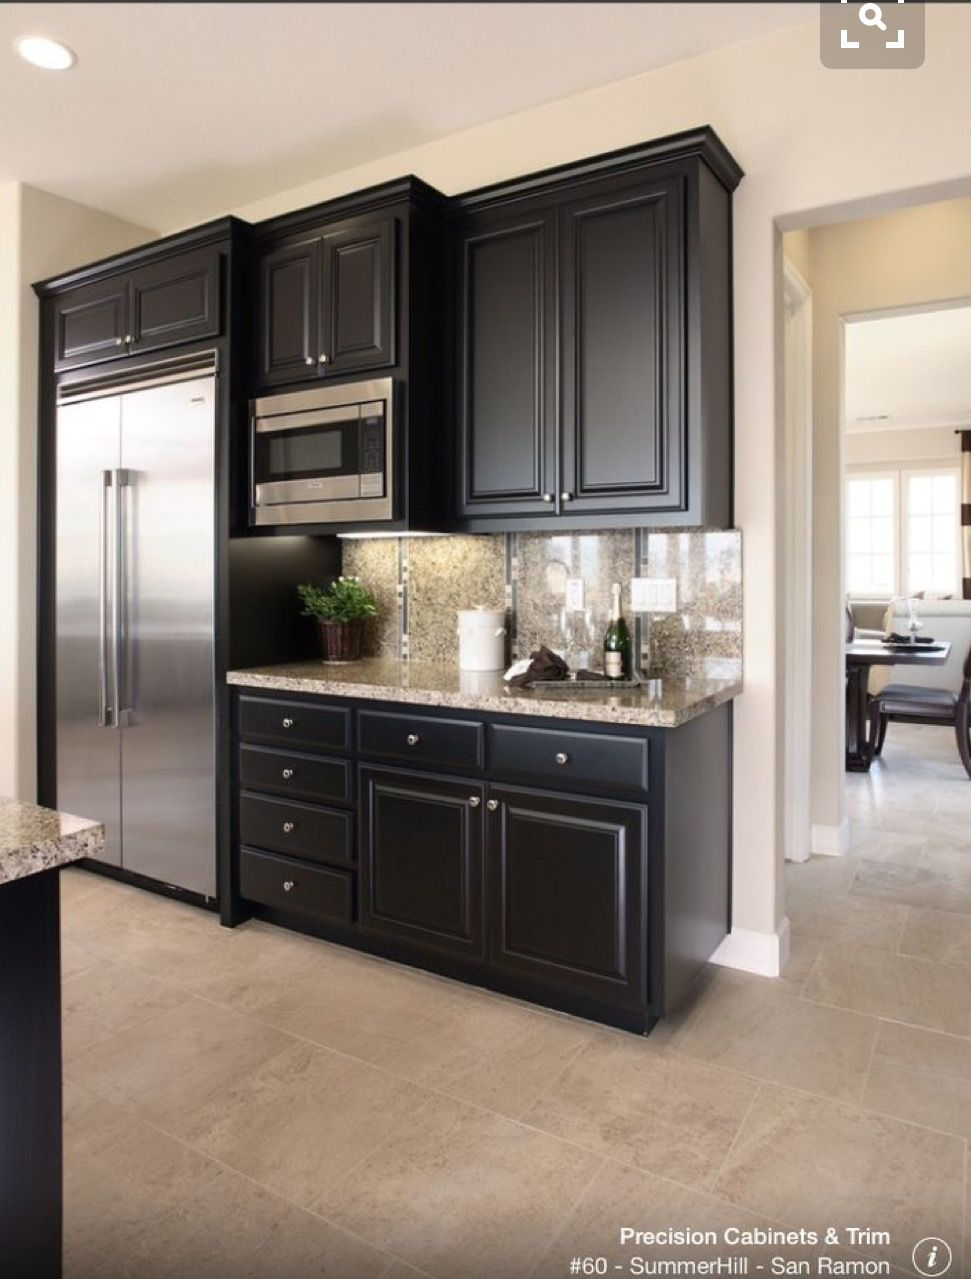 Upper cabinets step back in depth black kitchen cabinets kitchen redo kitchen black